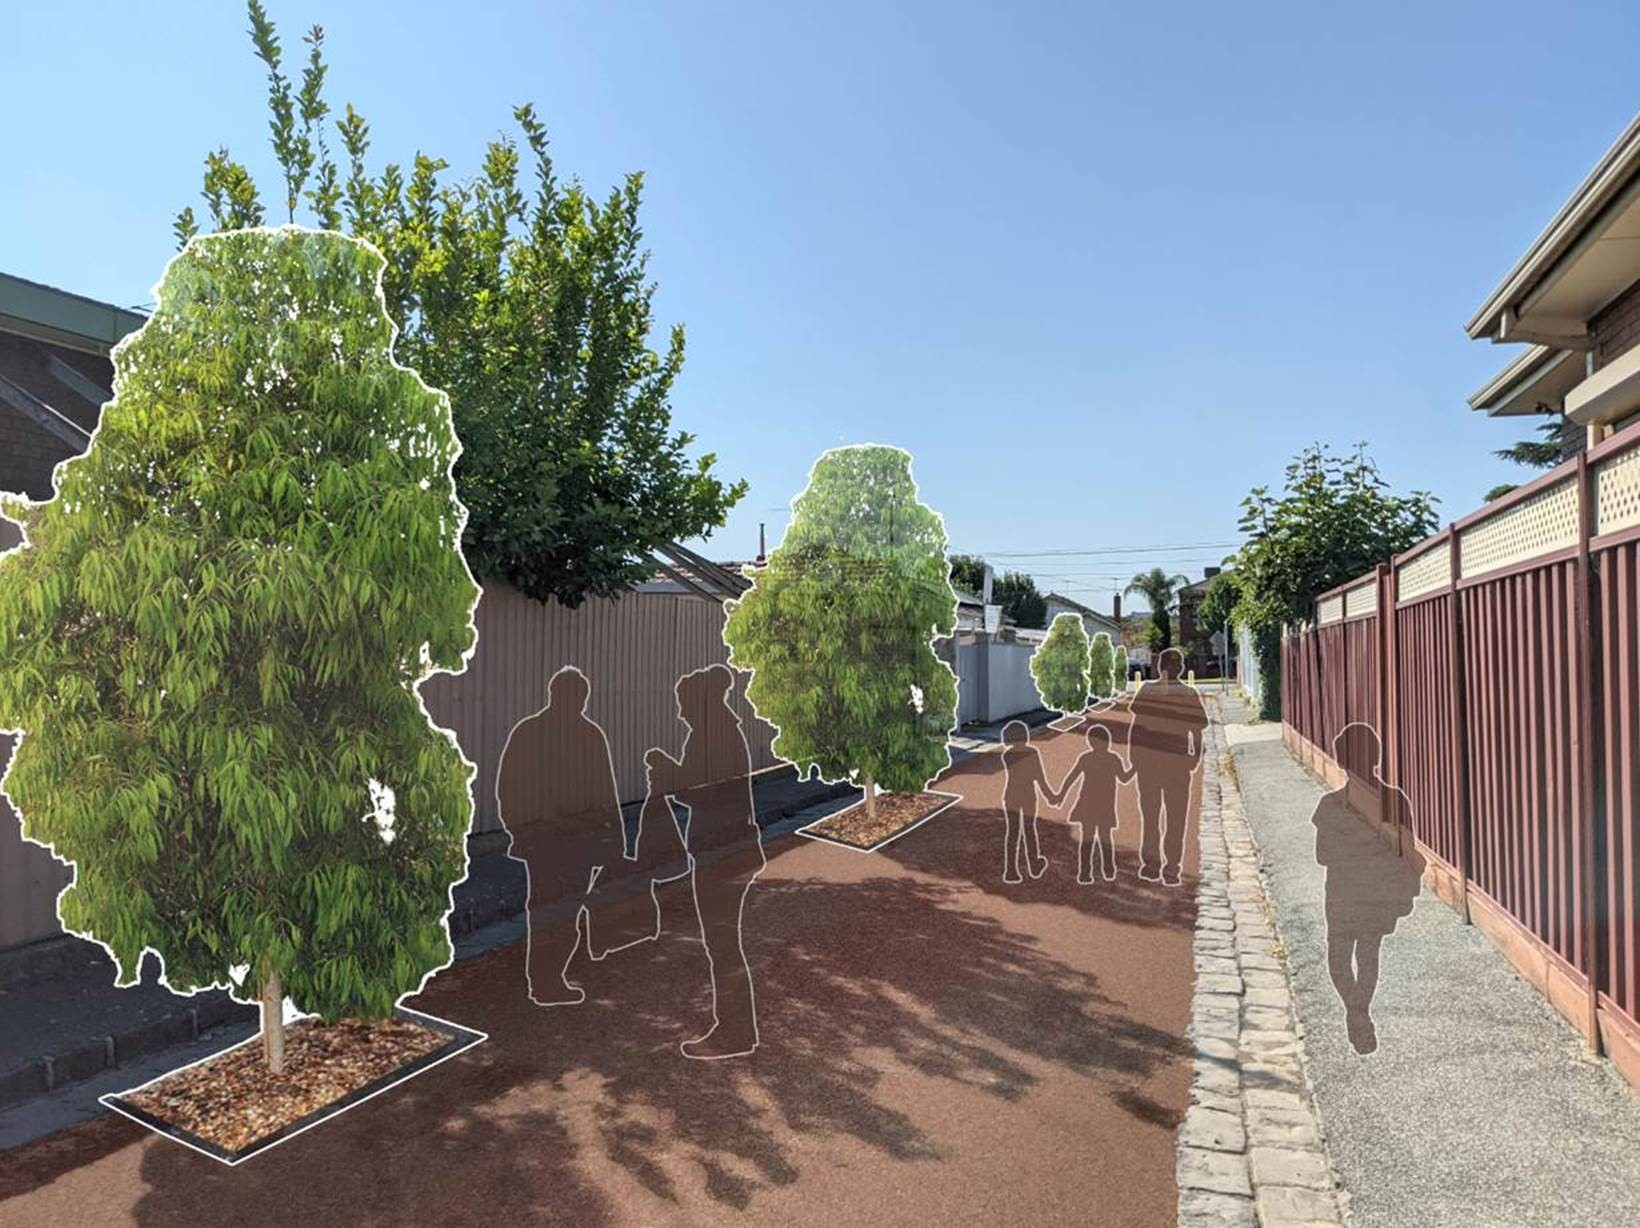 Image of Carlisle street with artist impression of the space closed off to traffic and pedestrians walking through ,there are also images of proposed trees